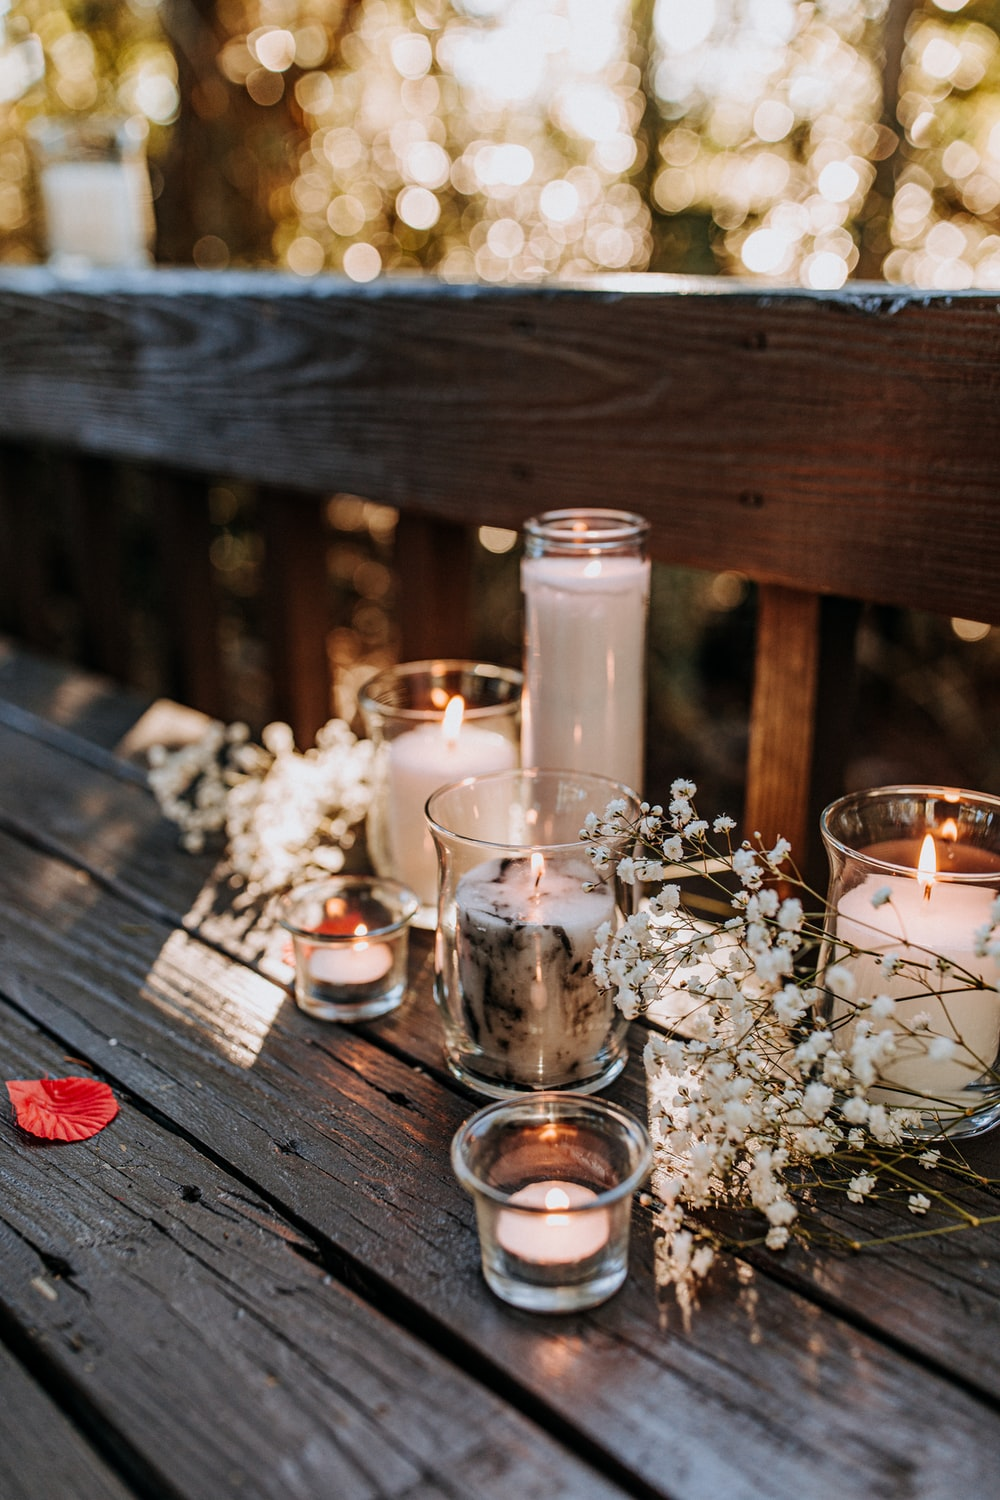 lit candles with white flower